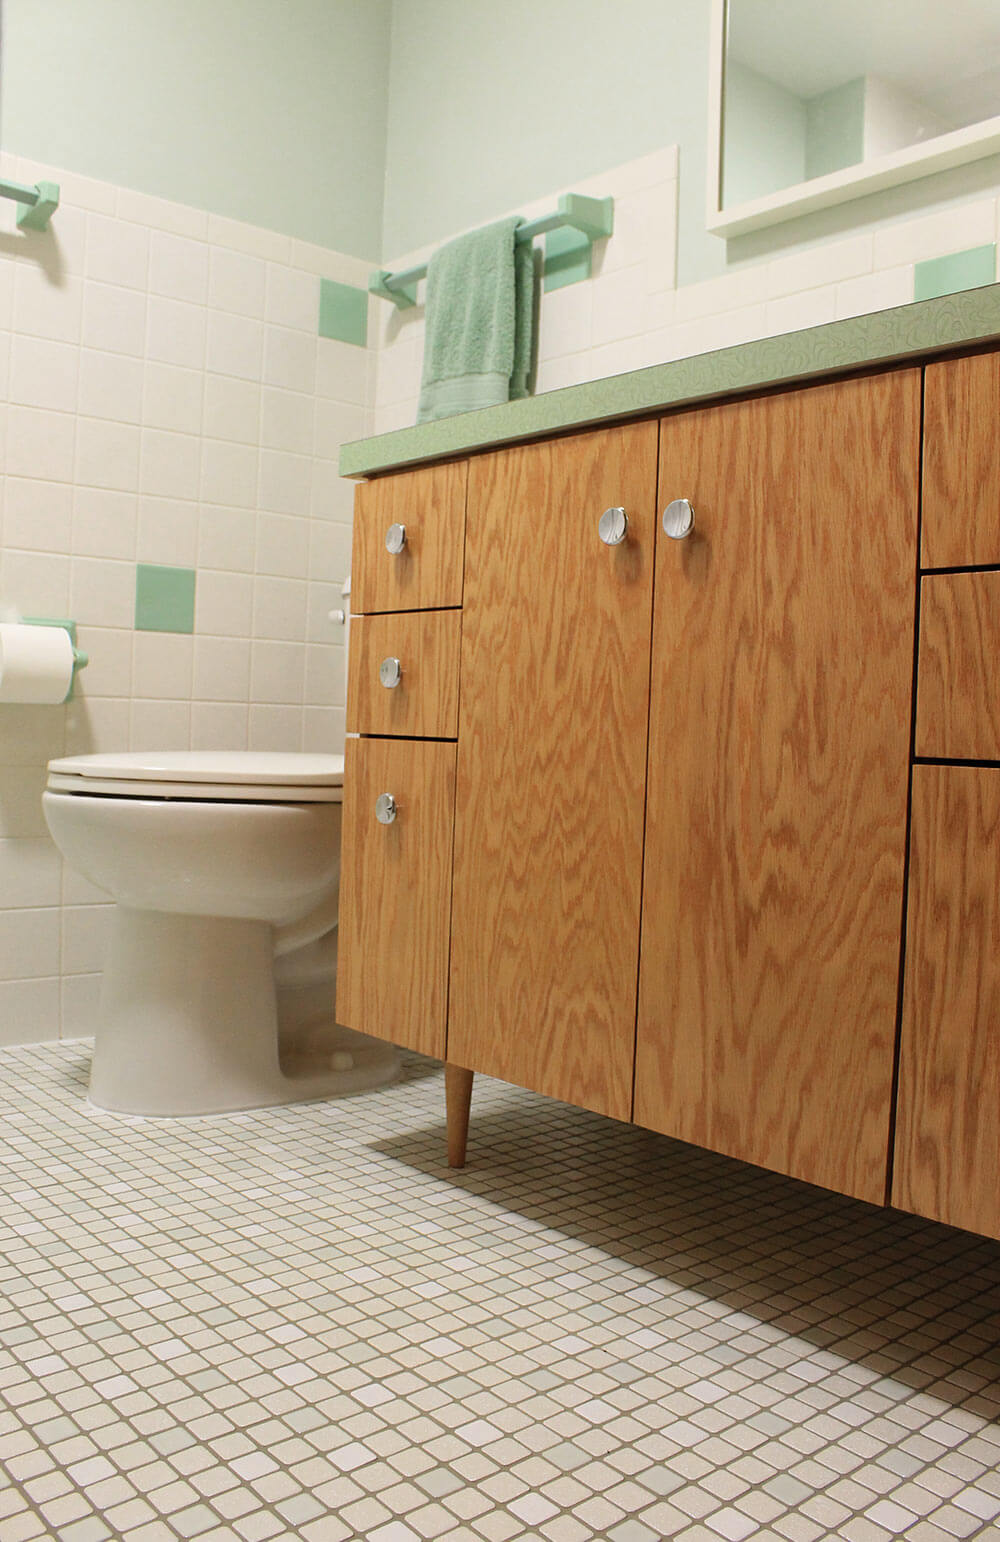 Kate S 1960s Green Bathroom Remodel Lite Before And